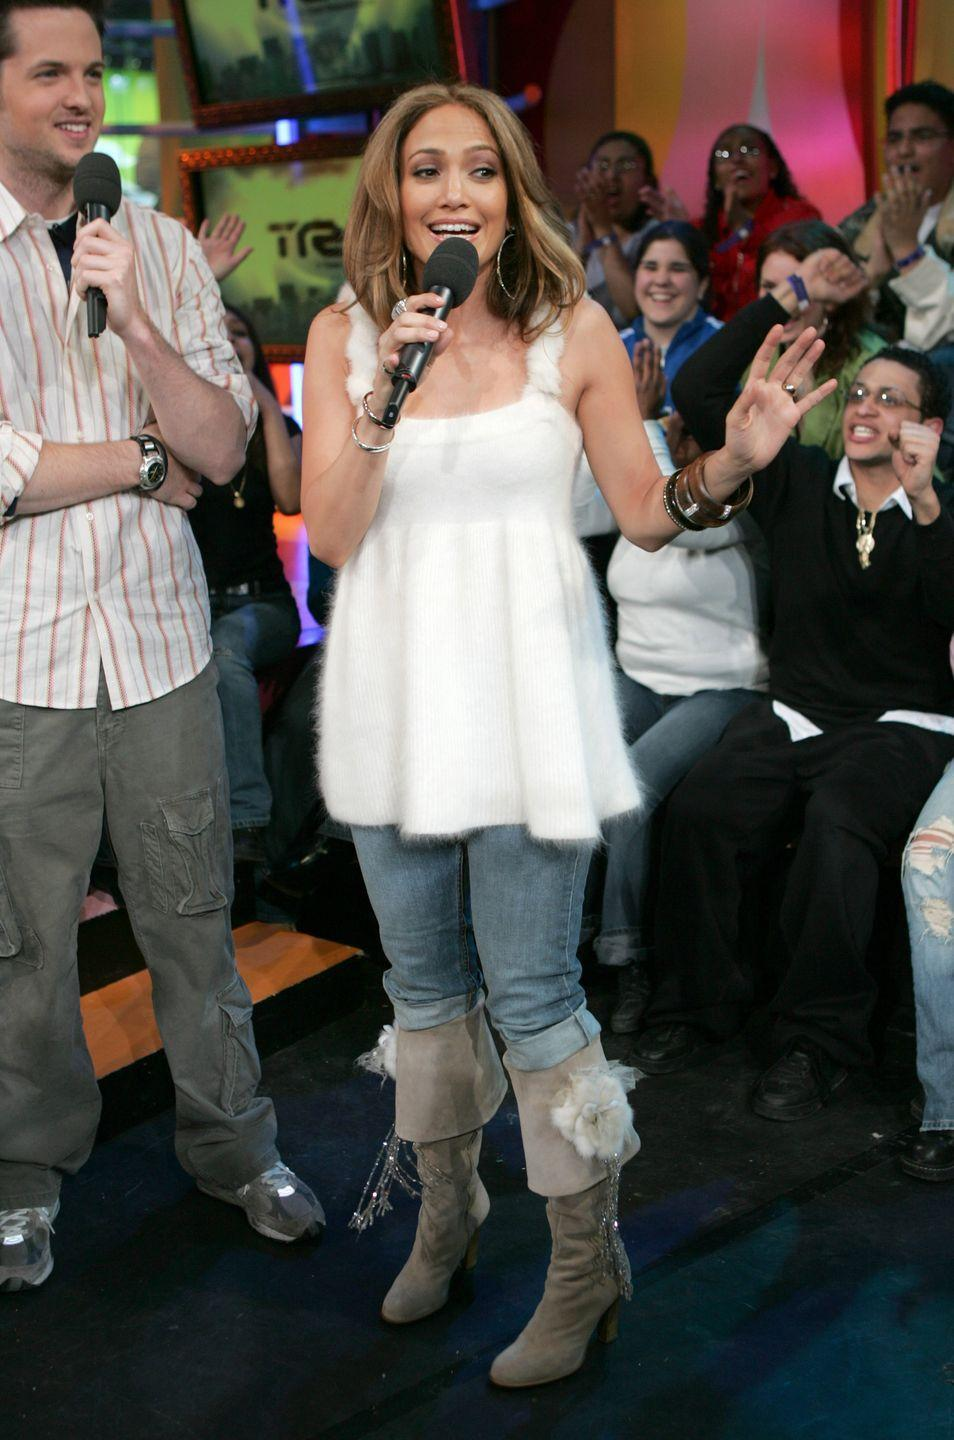 <p>If you ever have trouble sleeping, you could count J.Lo's shirt to fall asleep. The singer not only looked like a sheep in this fuzzy sweater tank top, but her boots also had a fuzzy situation going on. Just...too much. </p>